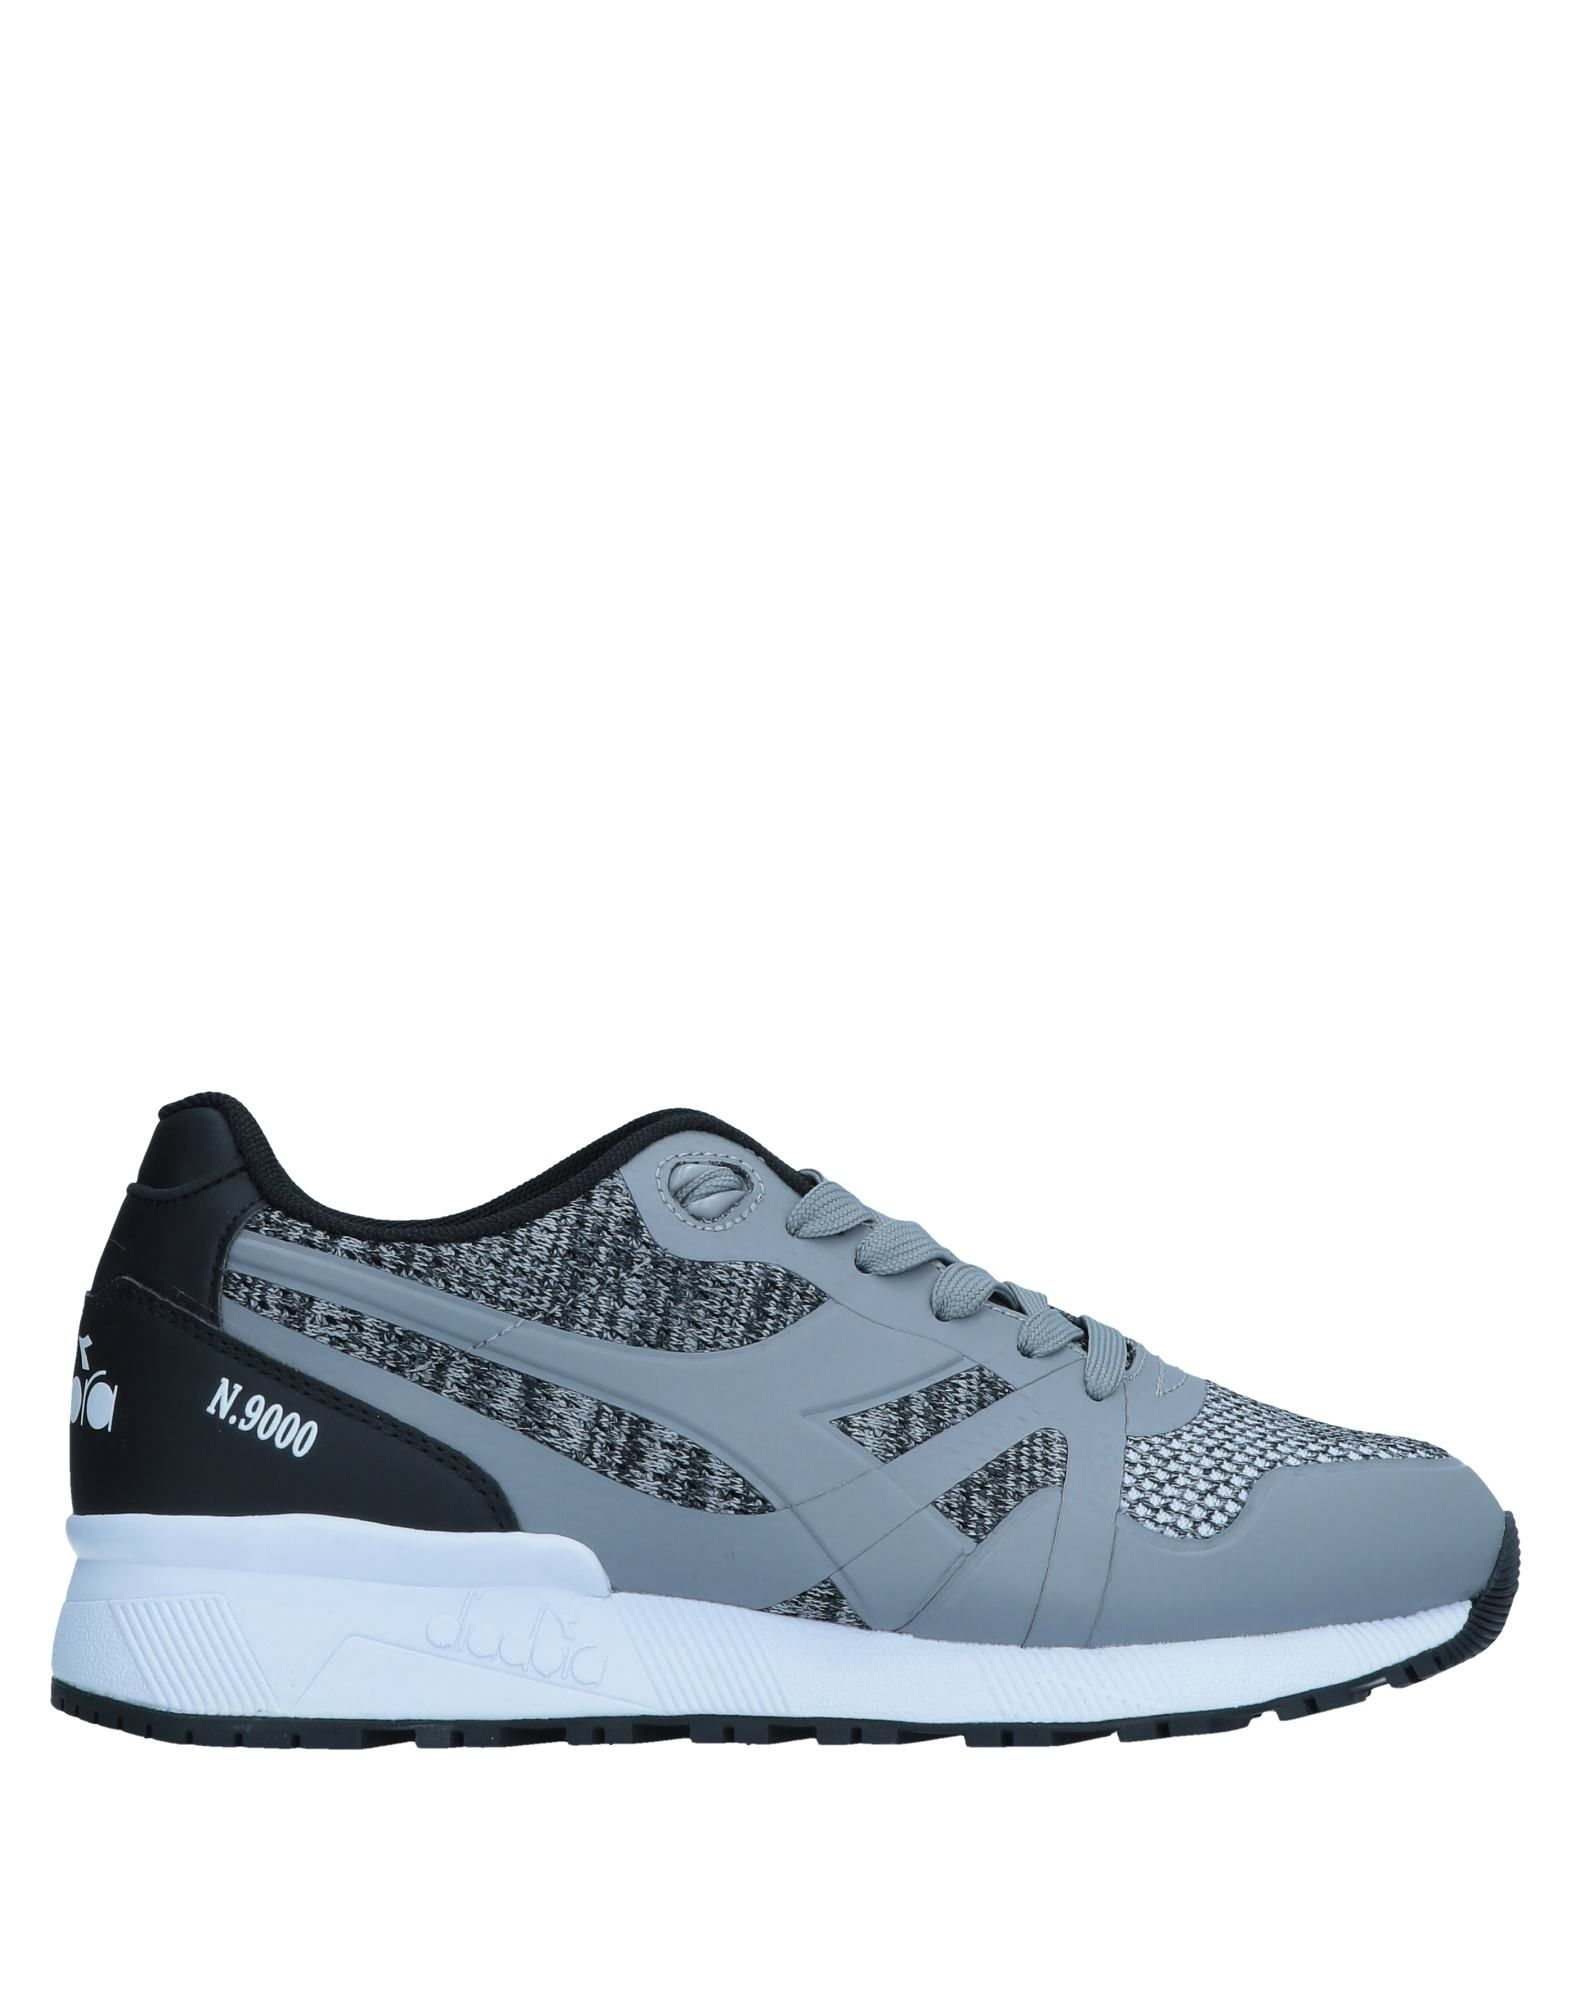 Diadora Sneakers - Men Diadora Sneakers online 11545658OR on  Australia - 11545658OR online aeddc1